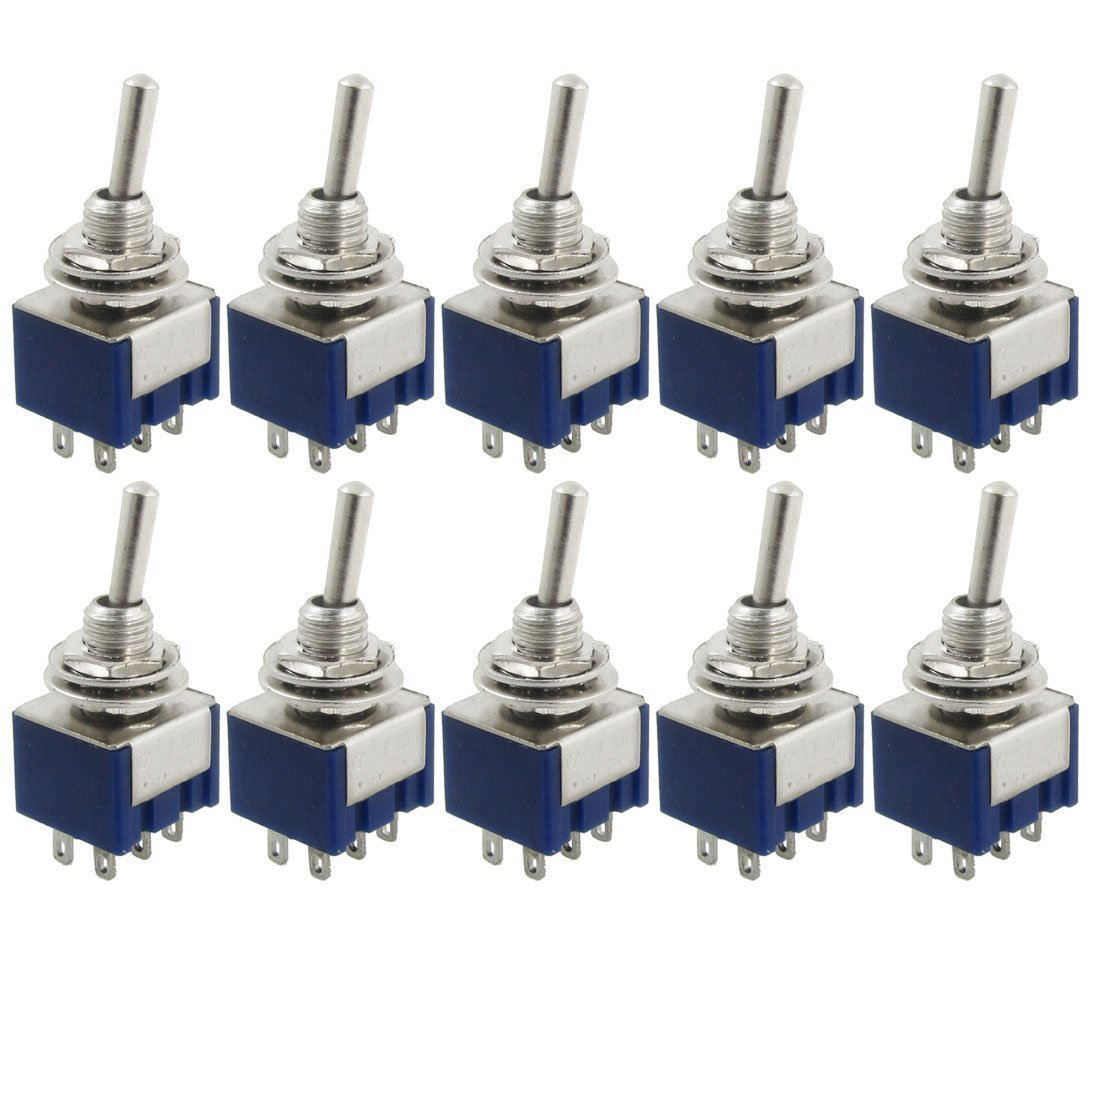 HiLetgo 10pcs MTS202 AC 125V 6A Amps ON/ON 6 Terminals 2 Position DPDT Toggle Switch